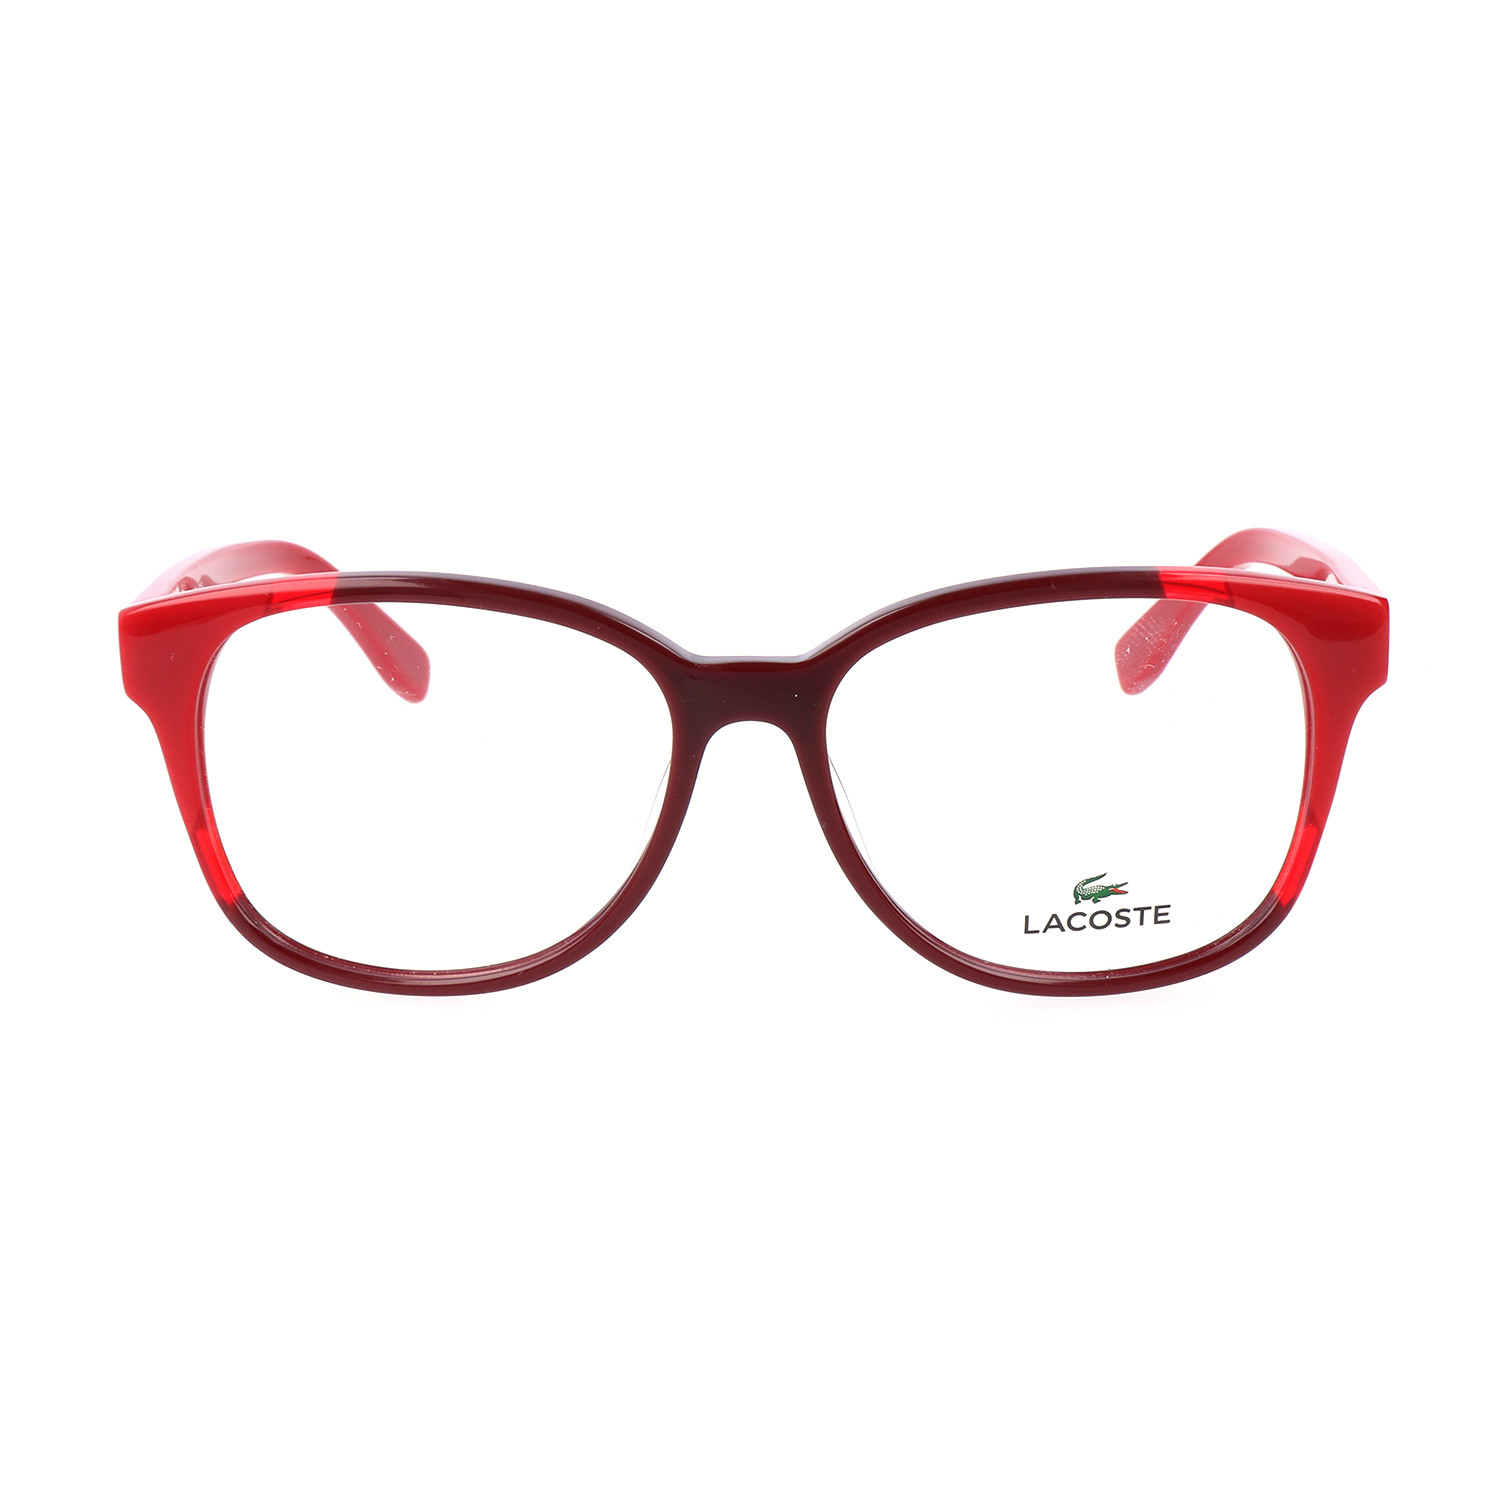 58b09634c7f Women s L2738 Optical Frames    Red - Lacoste - Touch of Modern